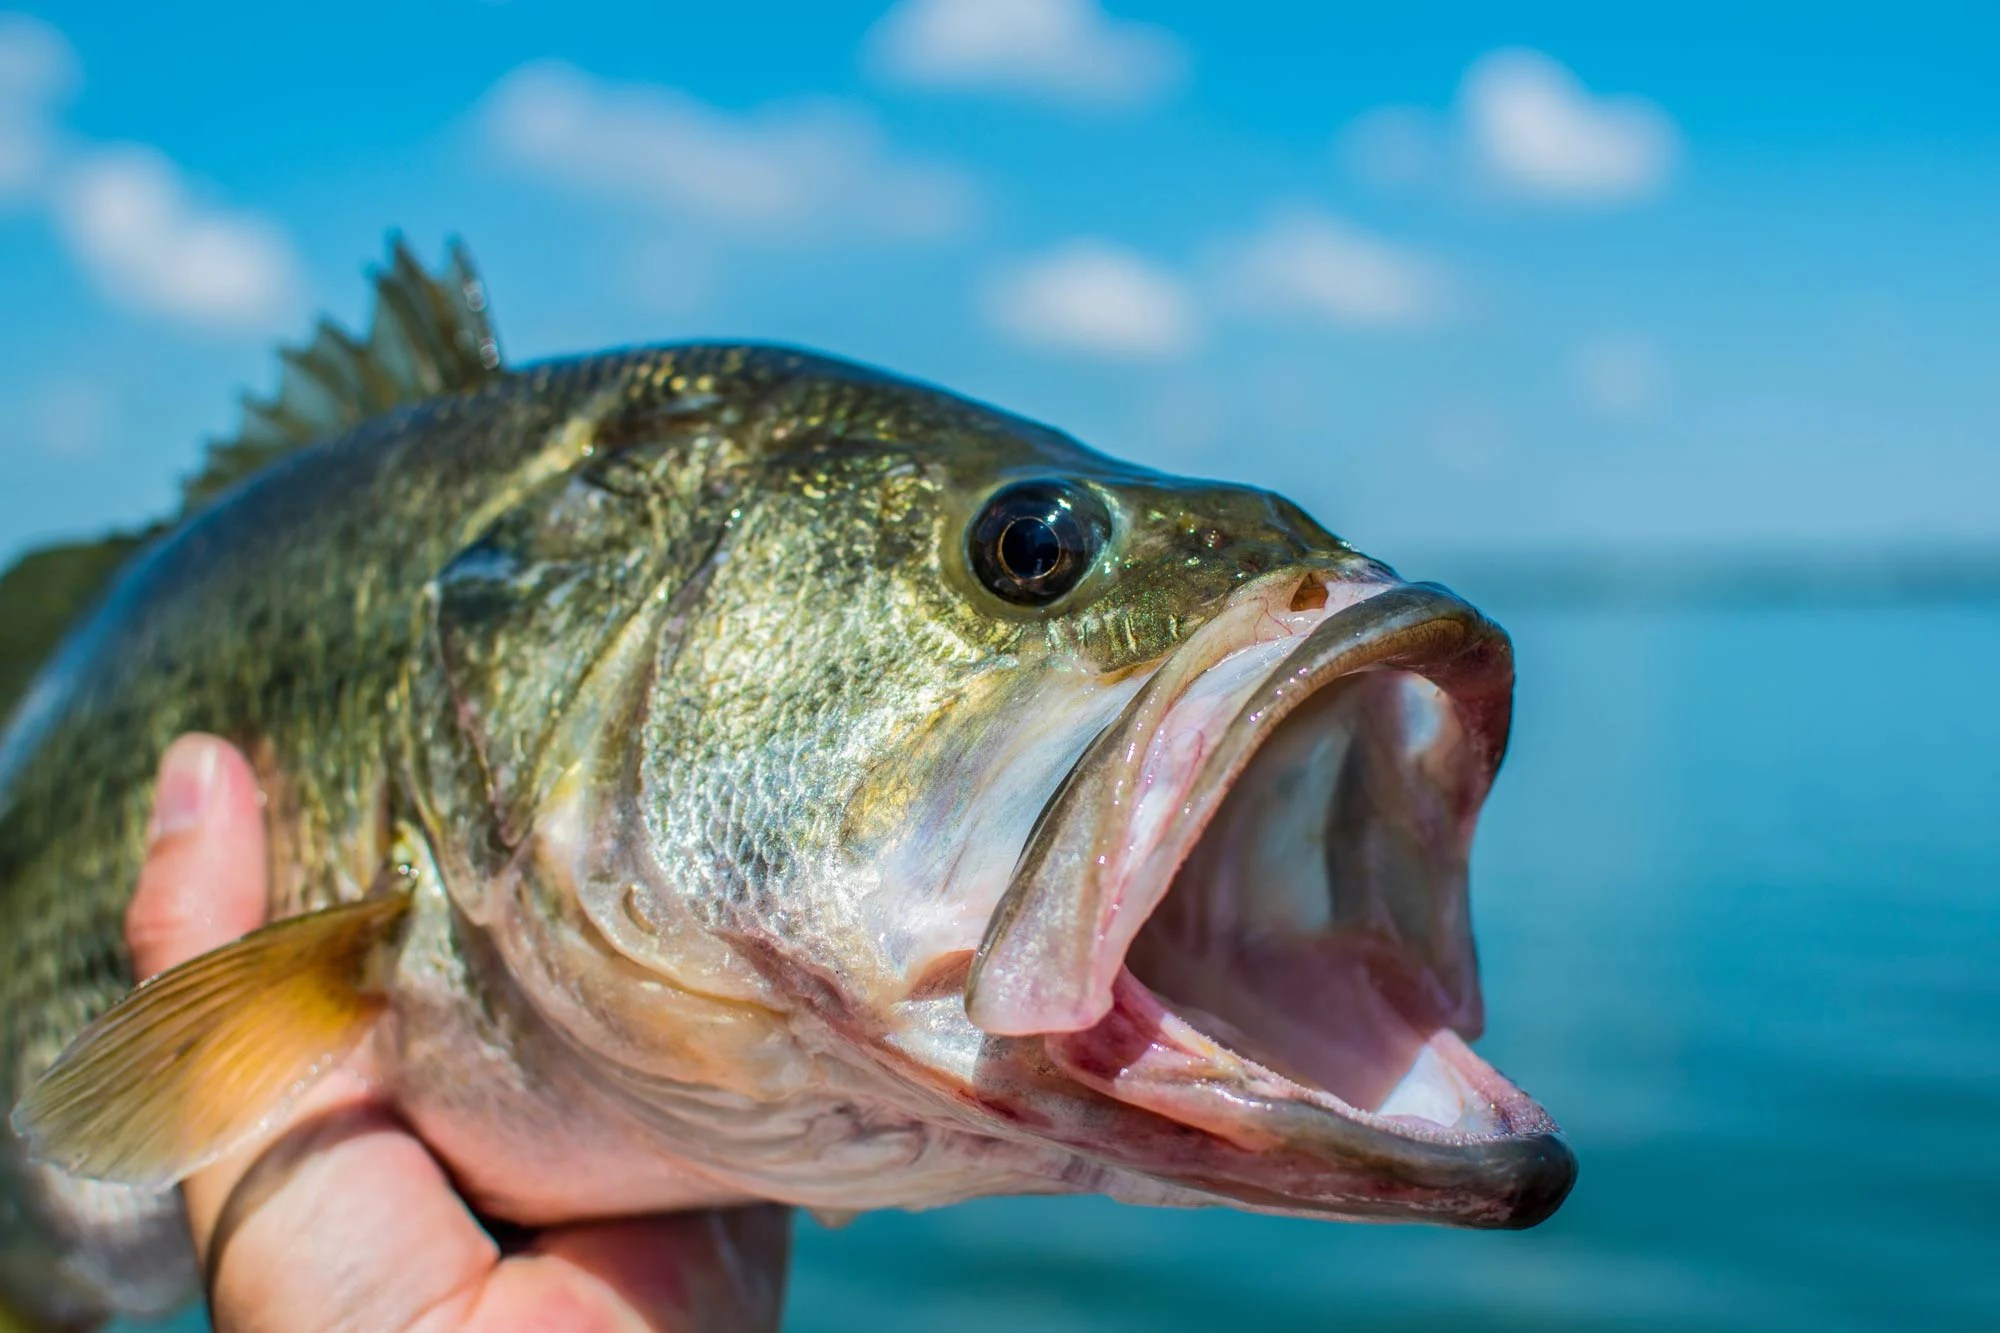 A close-up photo of a Largemouth Bass with water and blue skies in the background